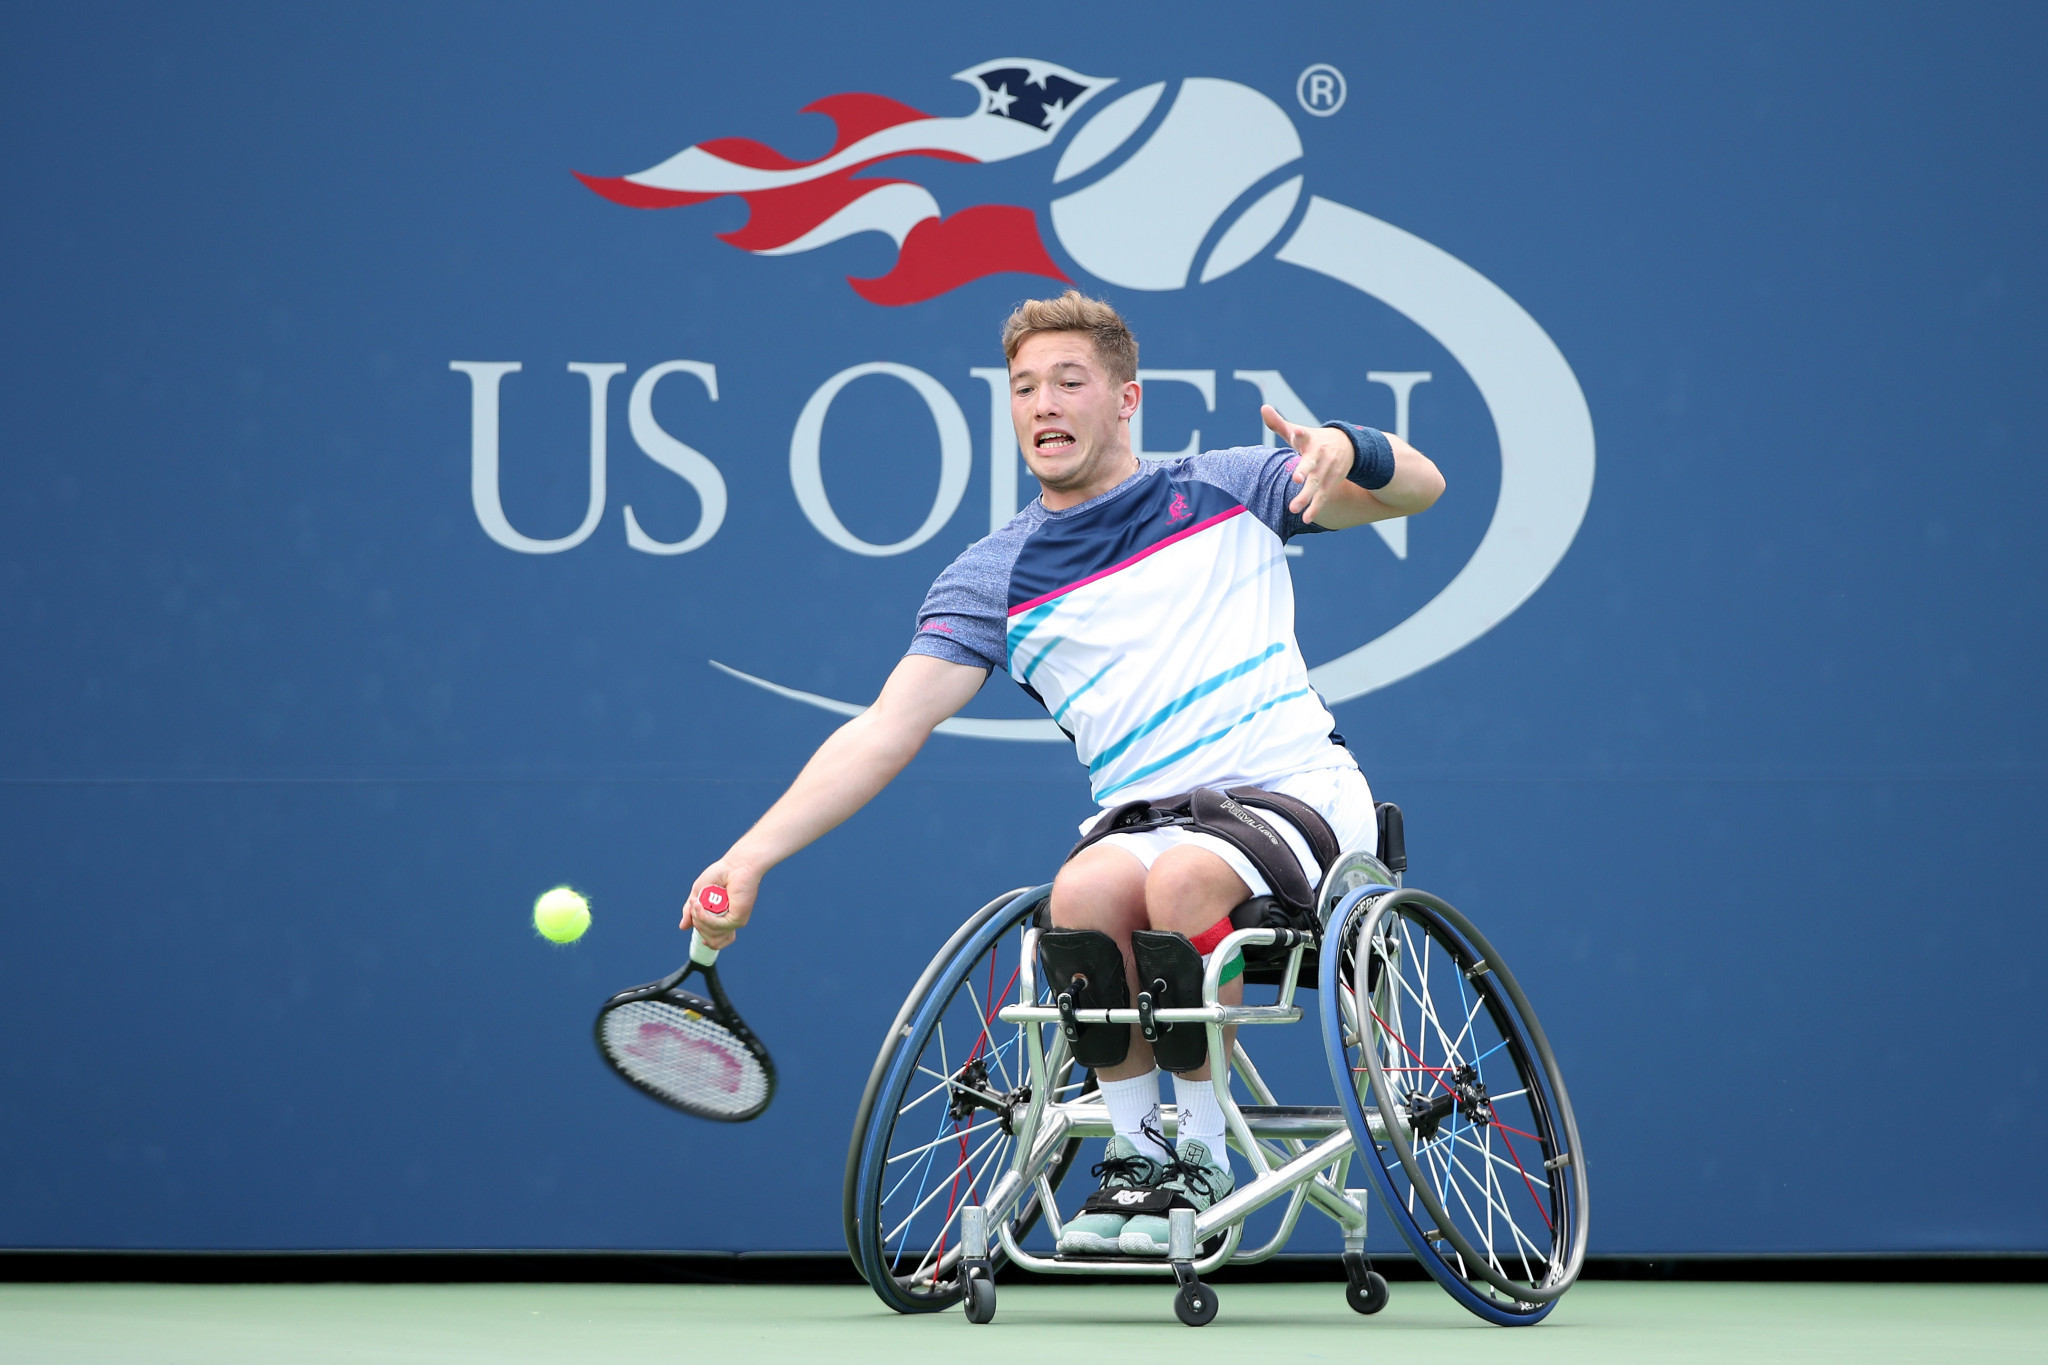 Alfie Hewett won an all-British semi-final at the US Open today ©Getty Images